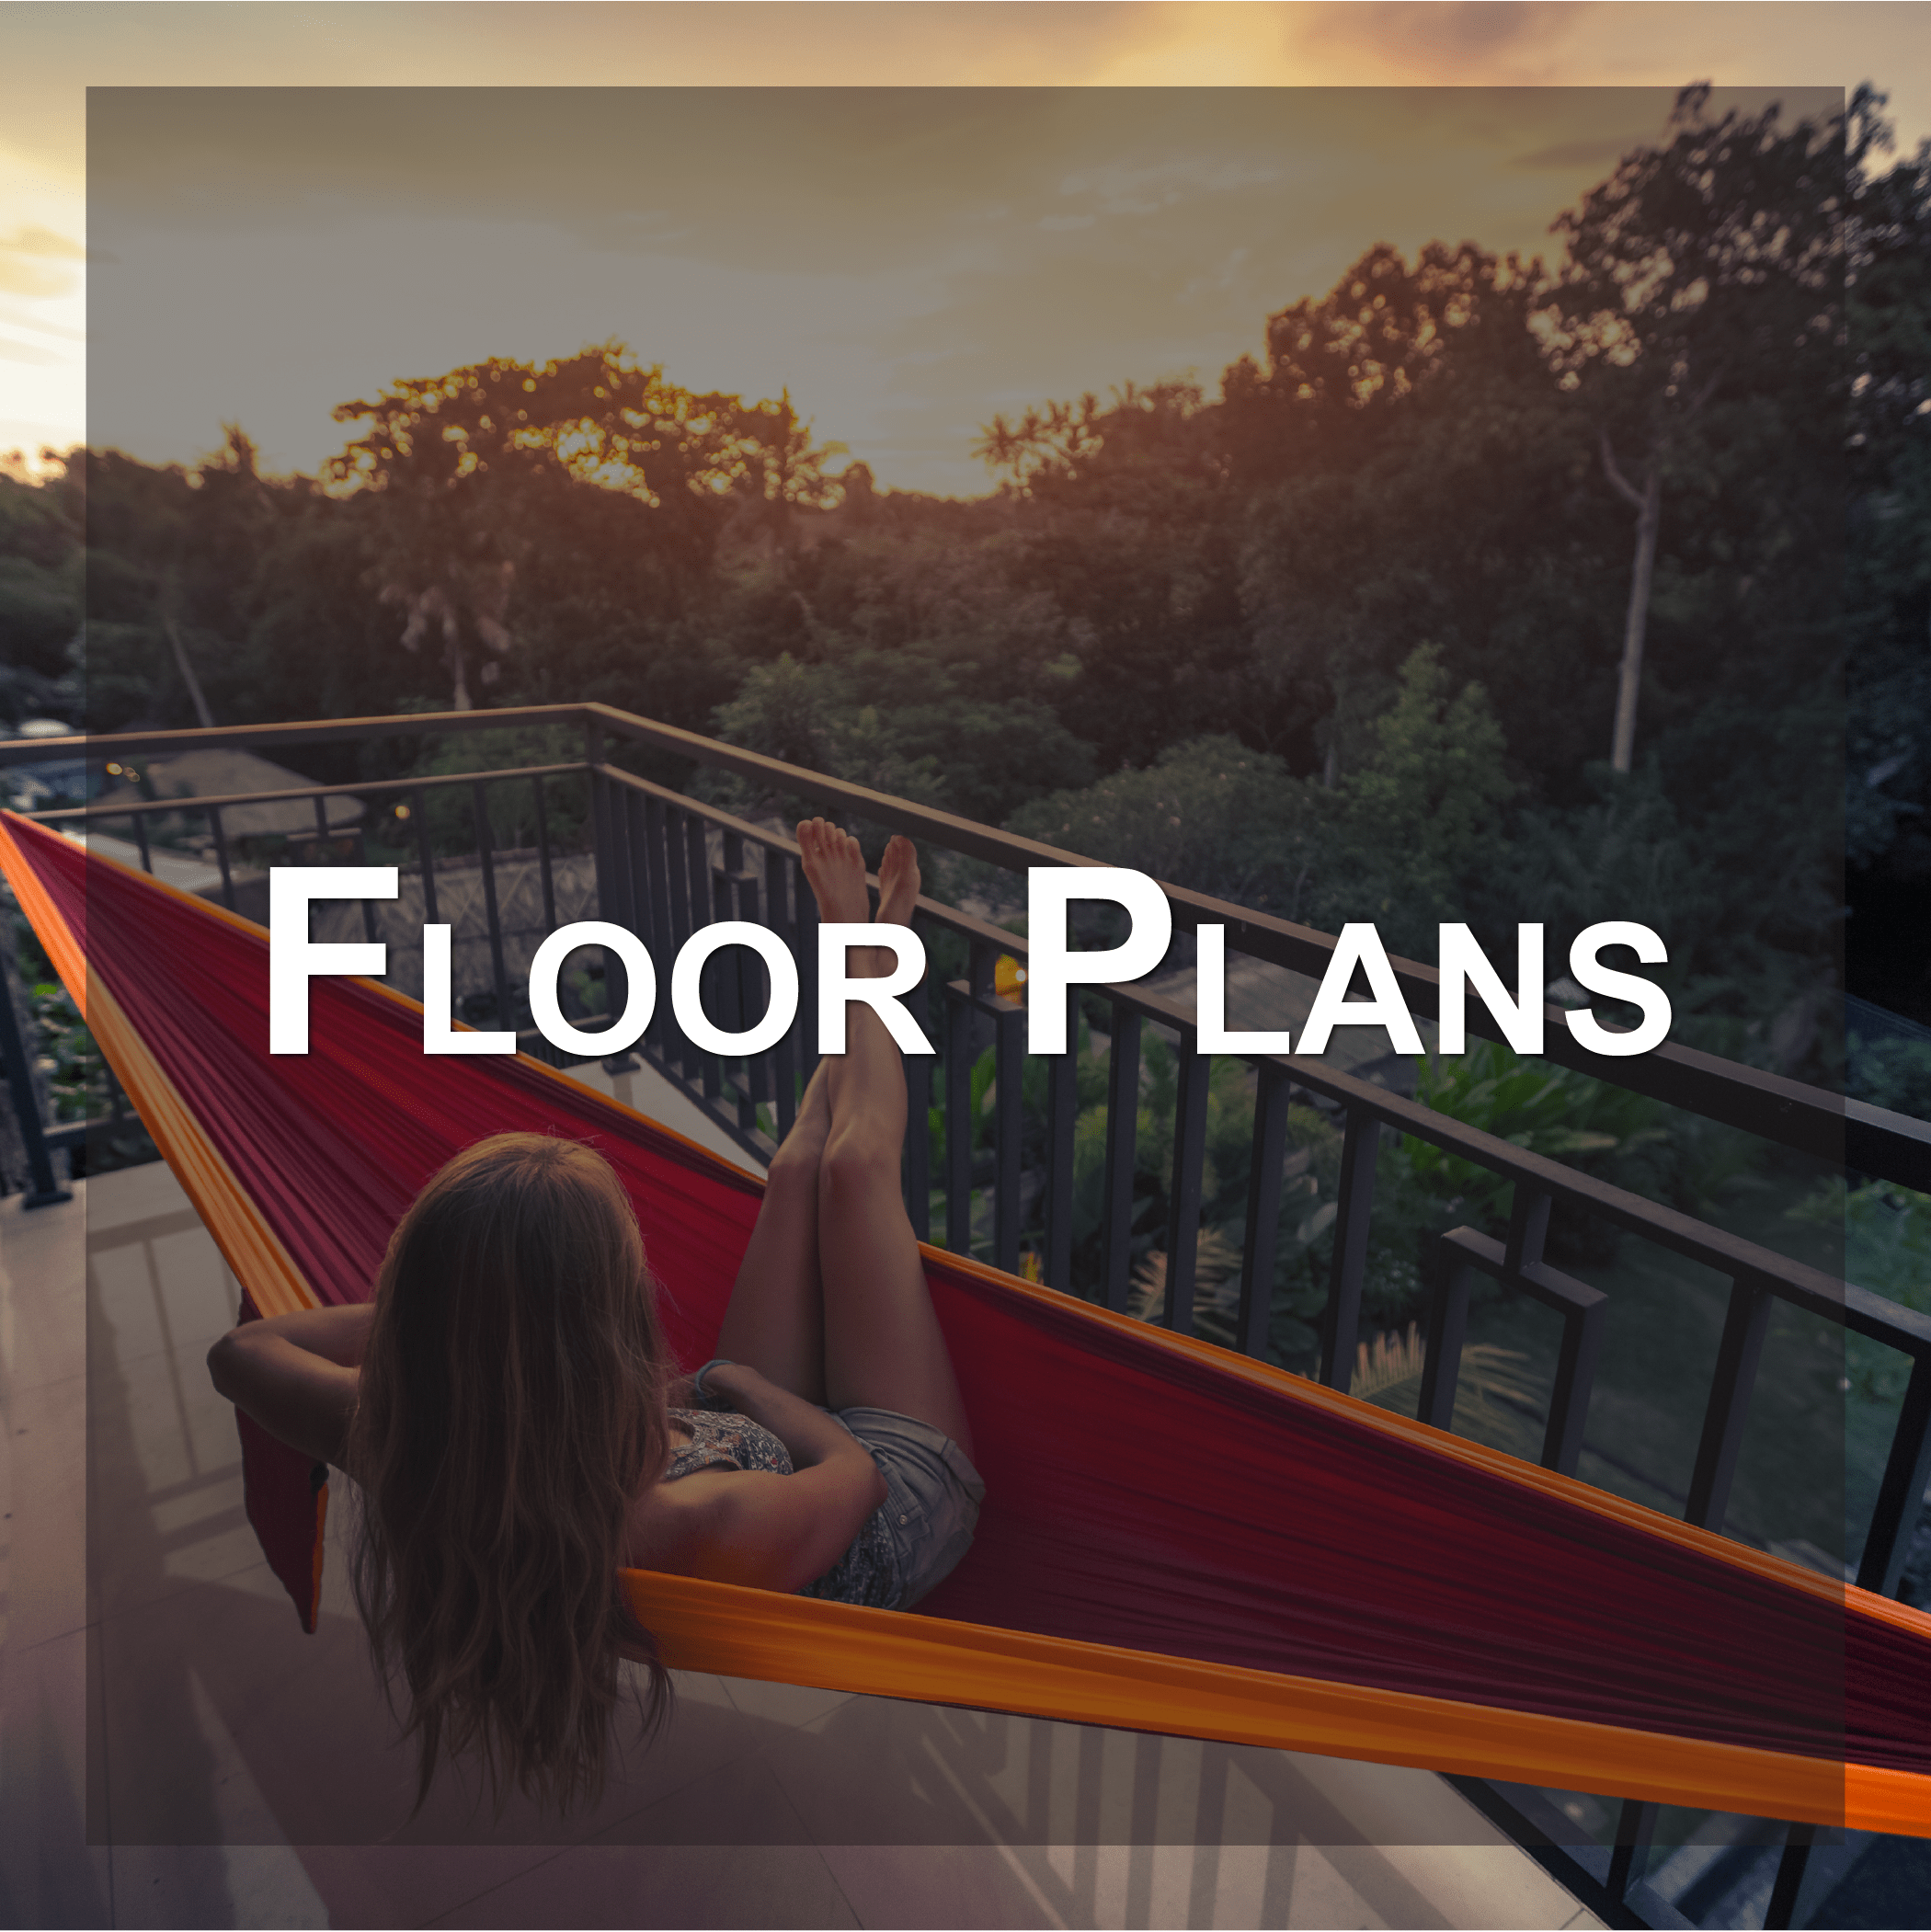 View the floor plans at Fieldstone Apartments in Mebane, North Carolina